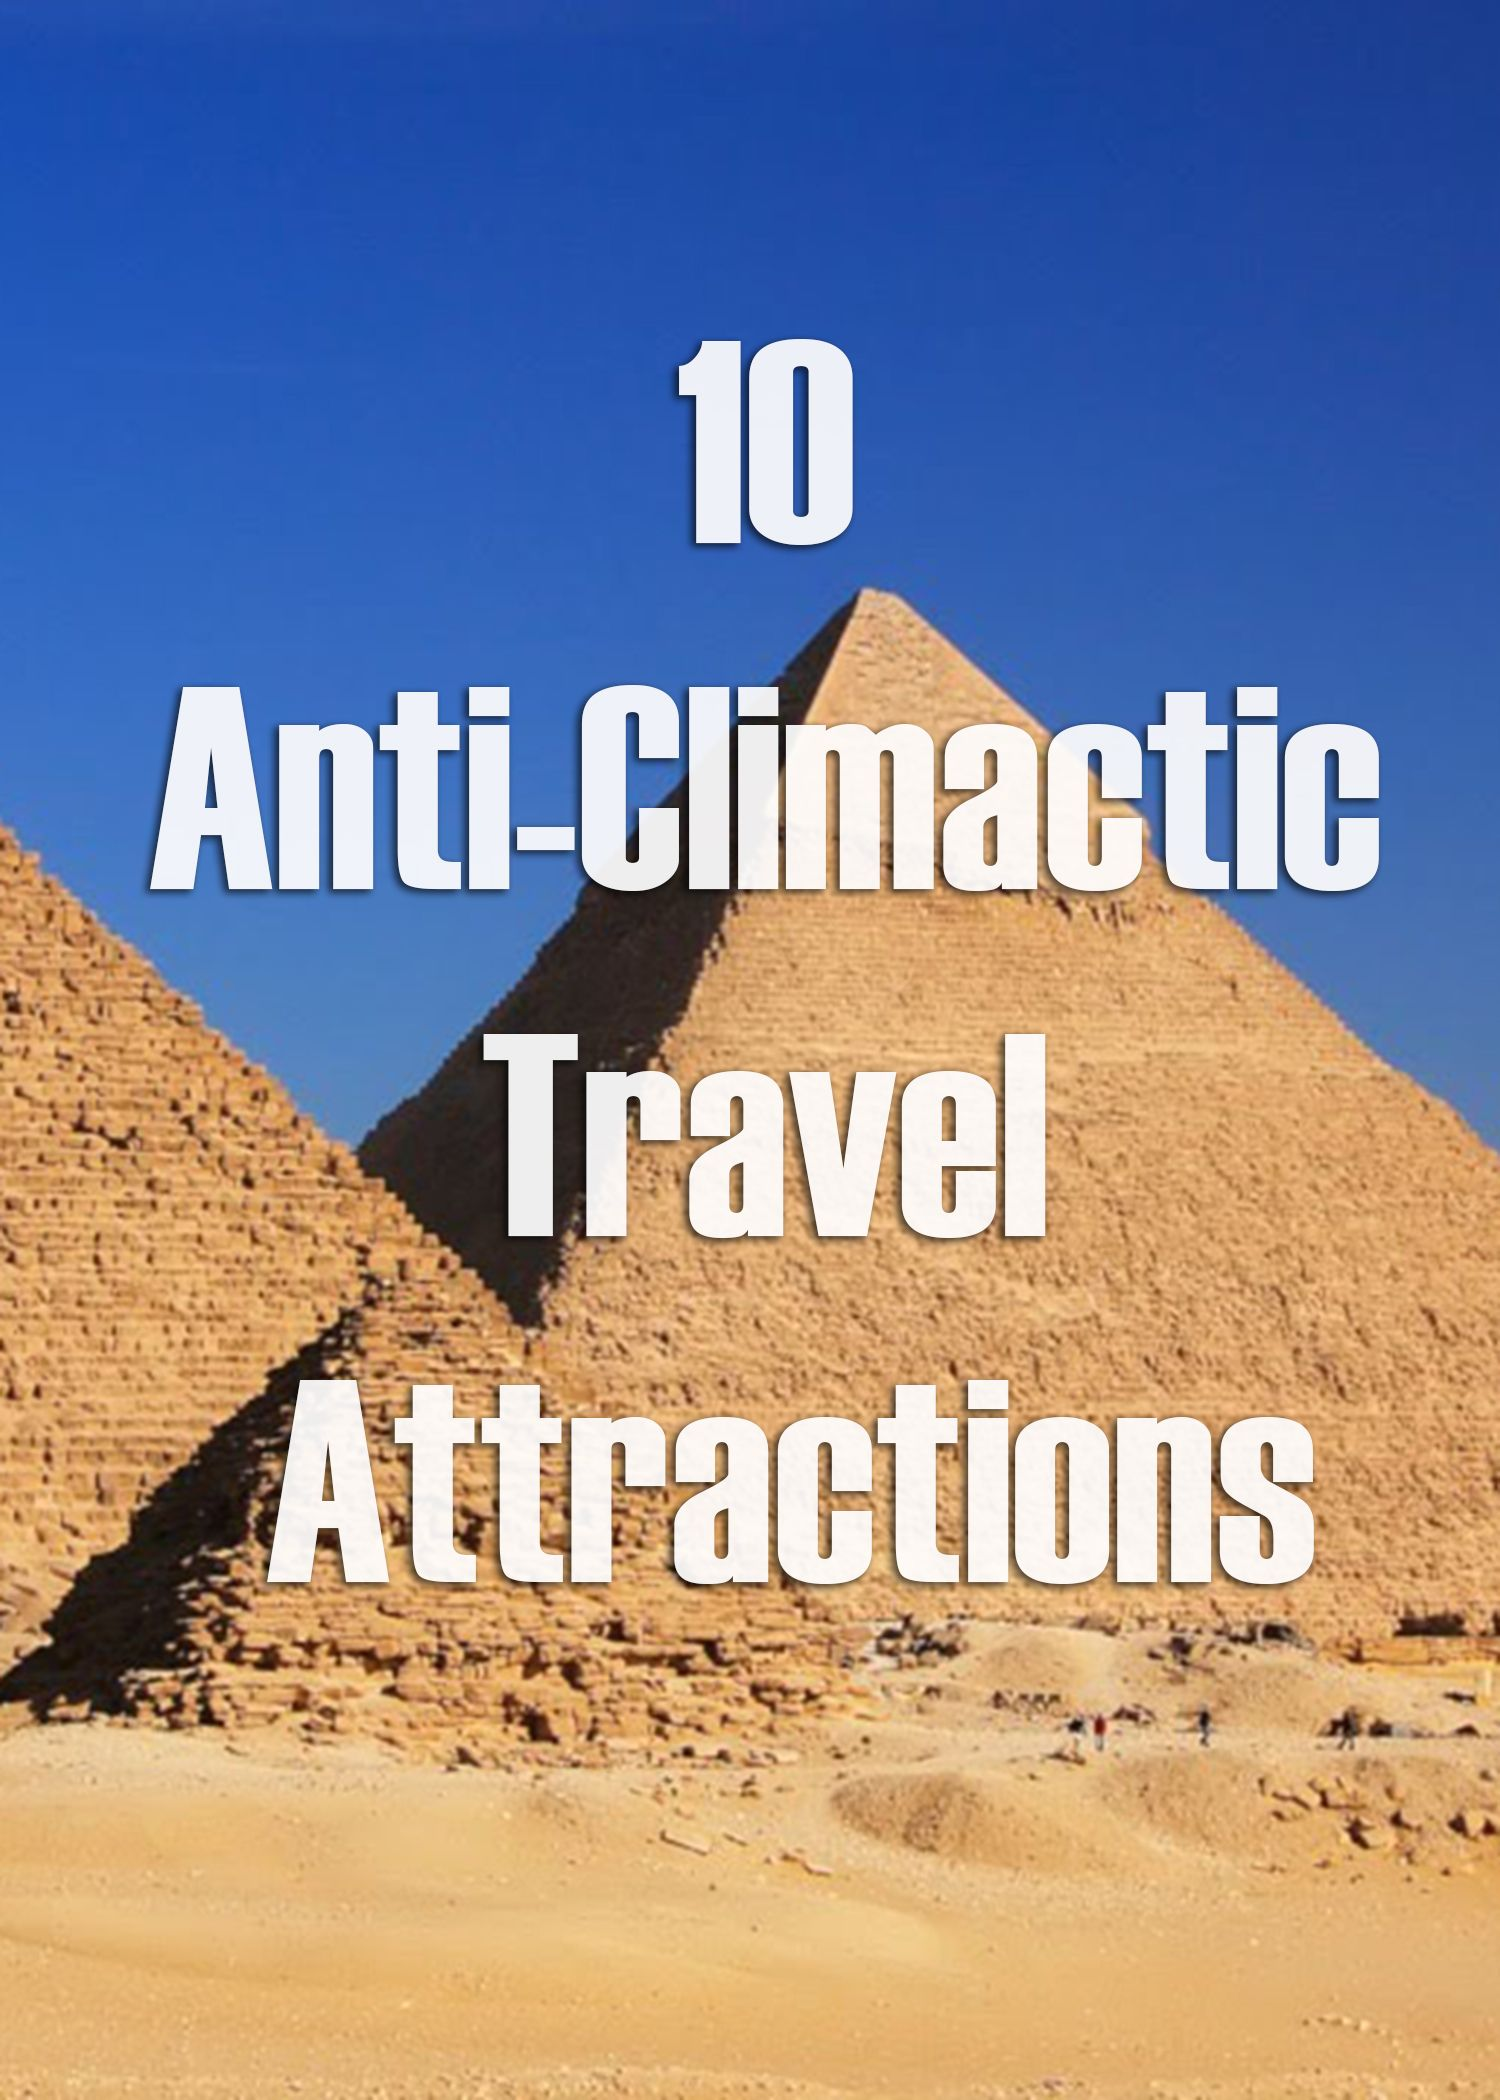 http://www.outsidetelevision.com/video/world-s-10-most-anti-climactic-travel-attractions